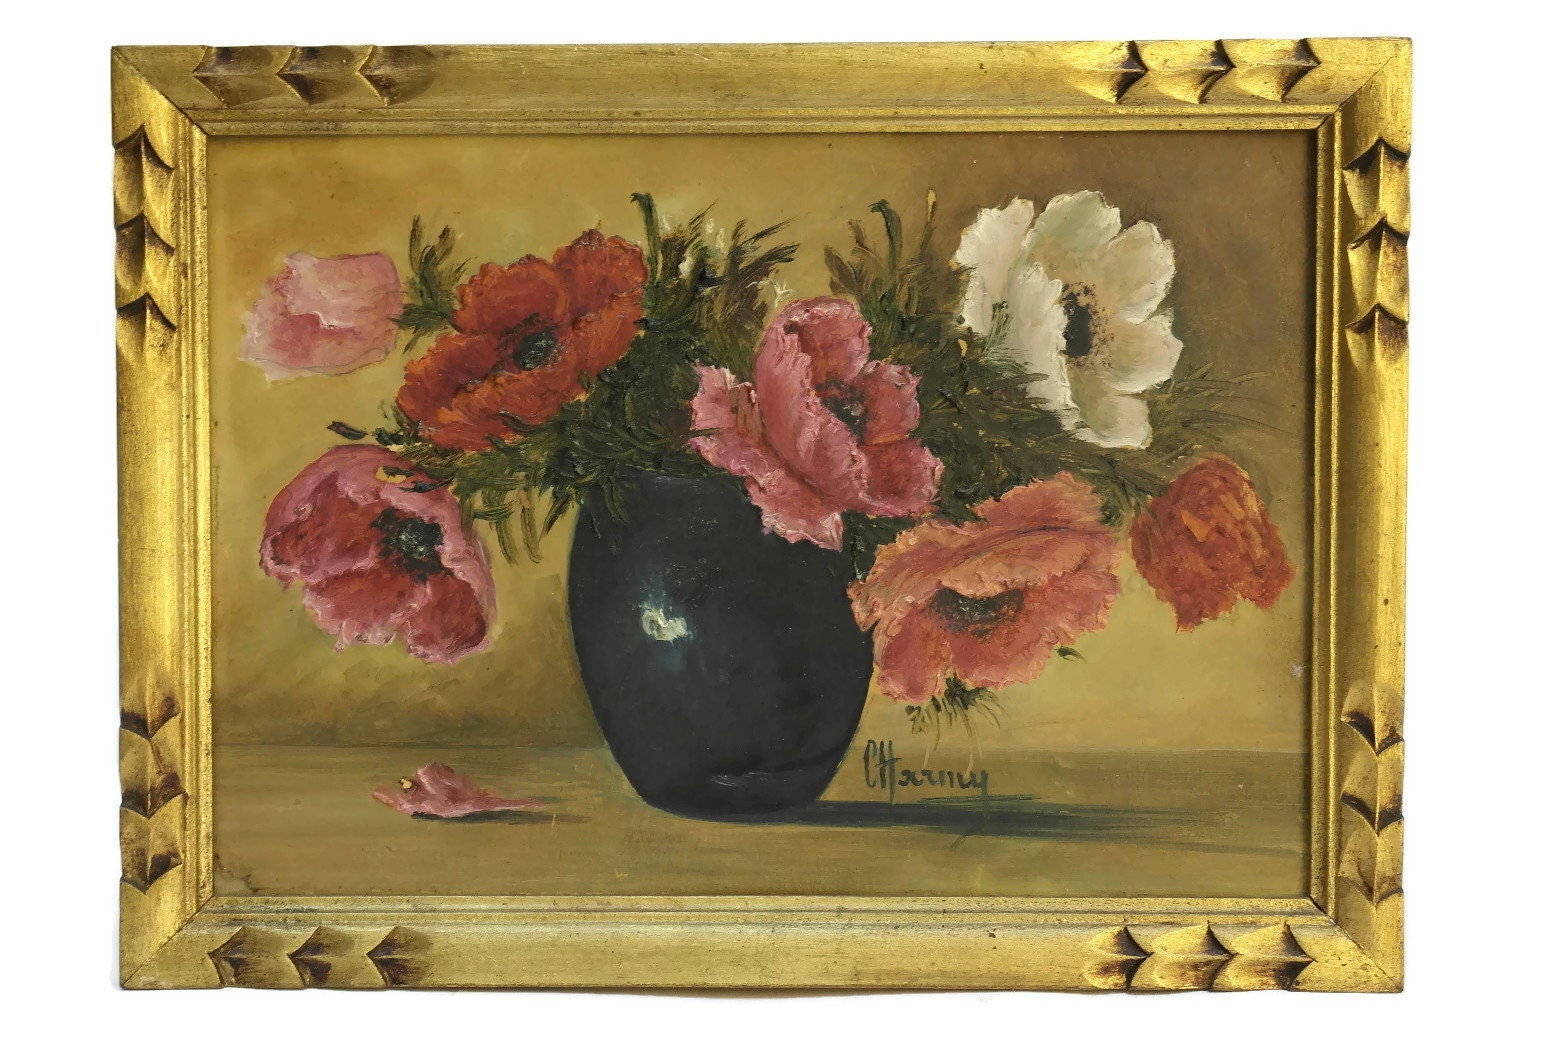 Poppy flower still life painting french flowers in vase original poppy flower still life painting french flowers in vase original framed art romantic floral home decor gifts mightylinksfo